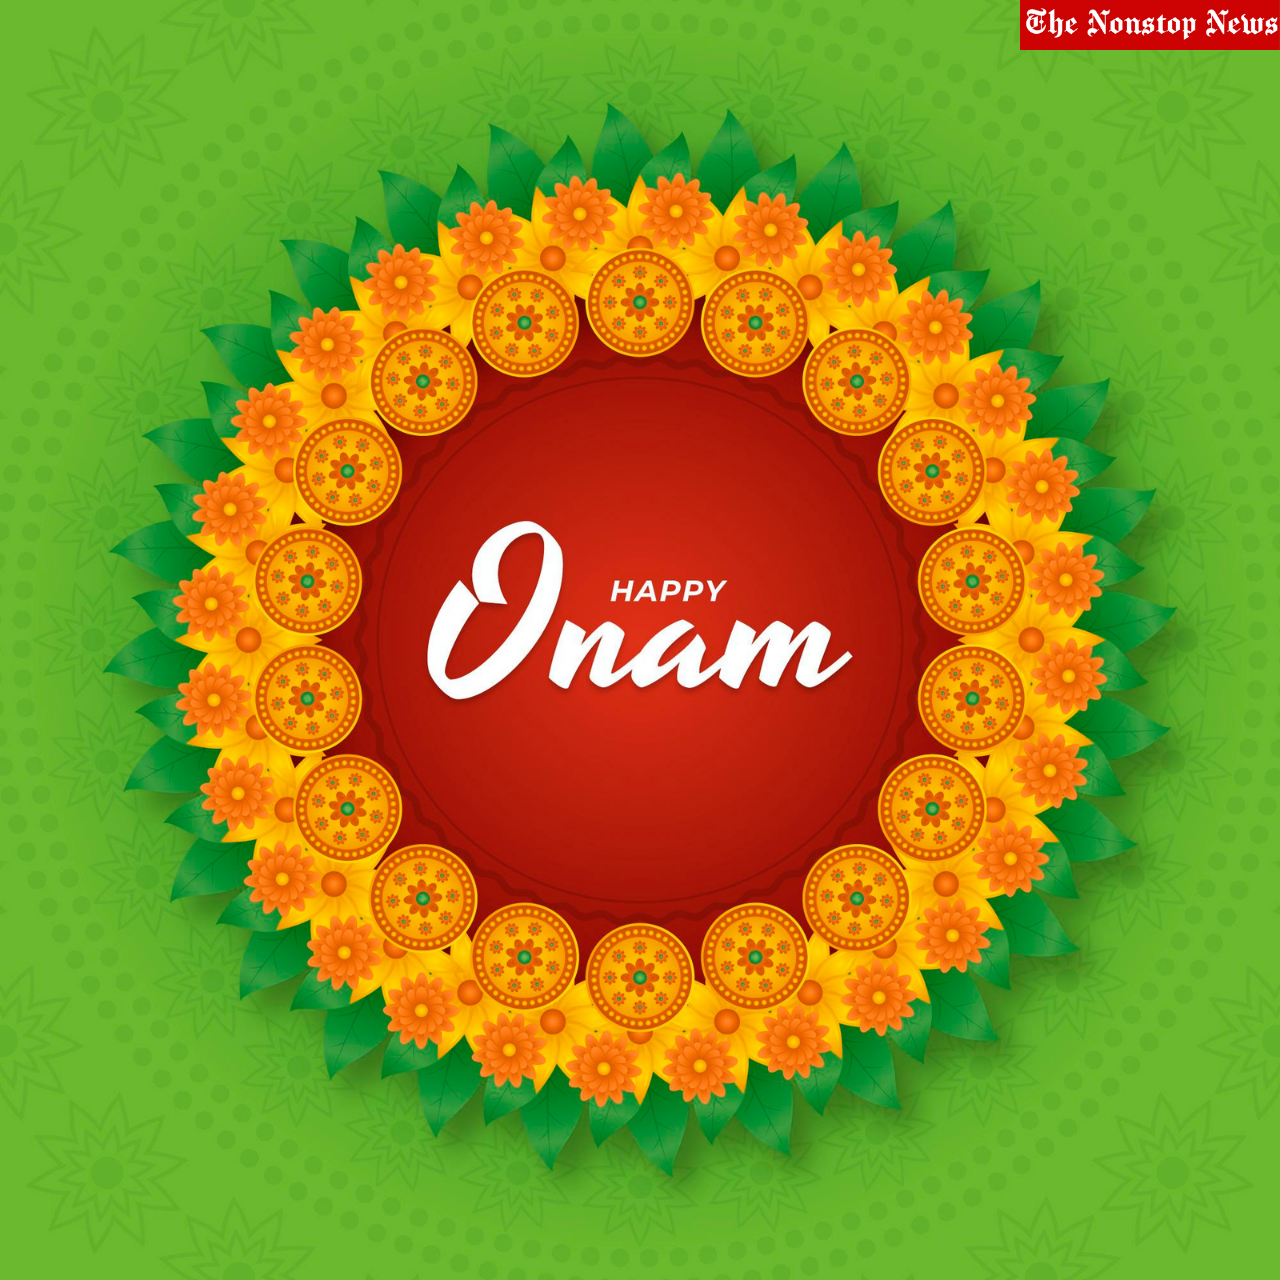 Onam 2021 Wishes, Messages, Quotes, Greetings, Messages, Status, and HD Images to Share